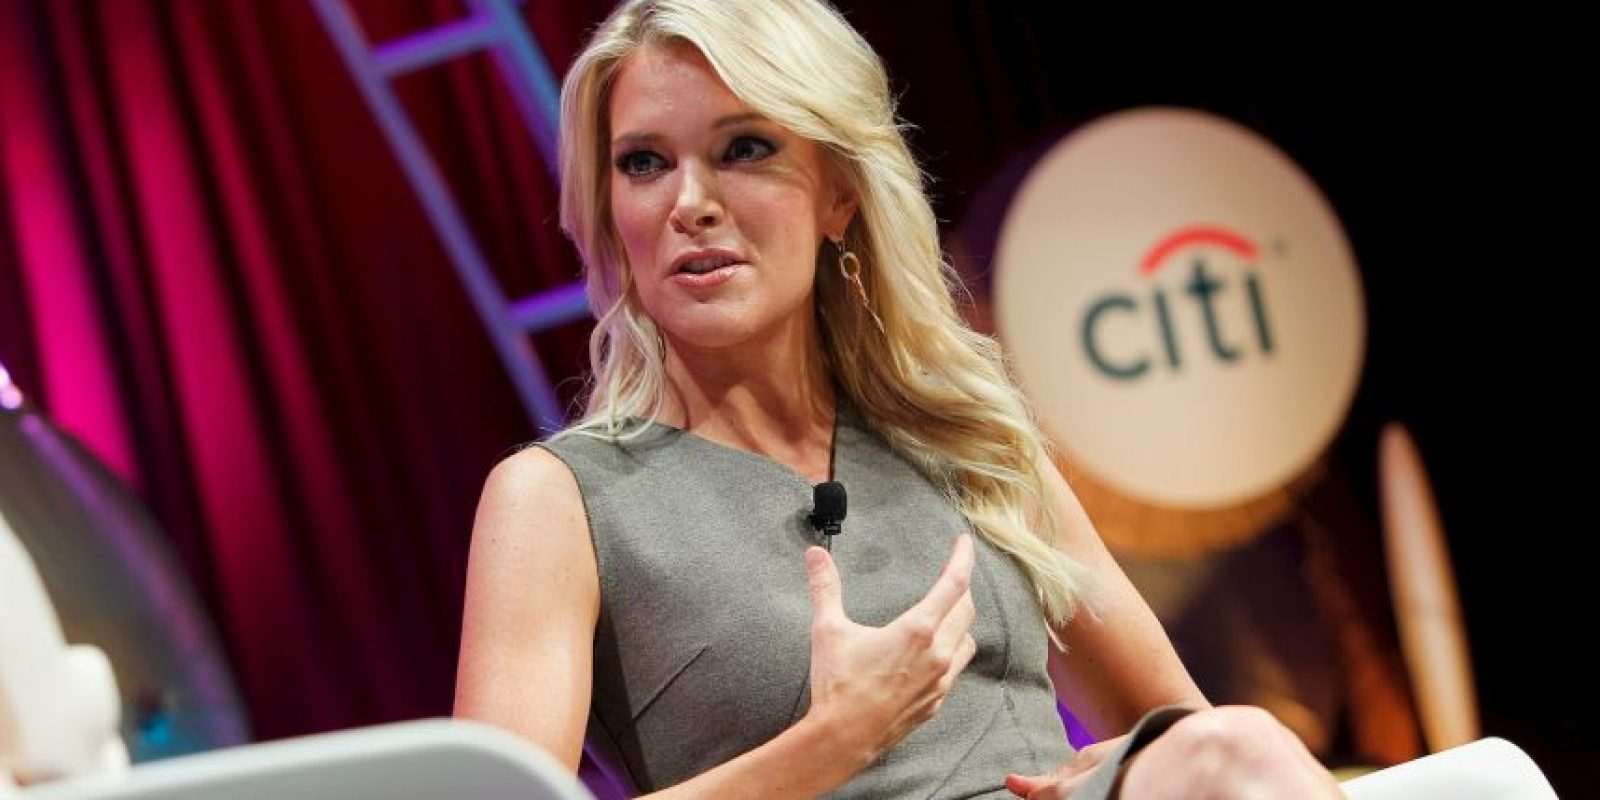 Megyn Kelly, periodista y presentadora de la Cadena Fox News. Foto: Getty Images